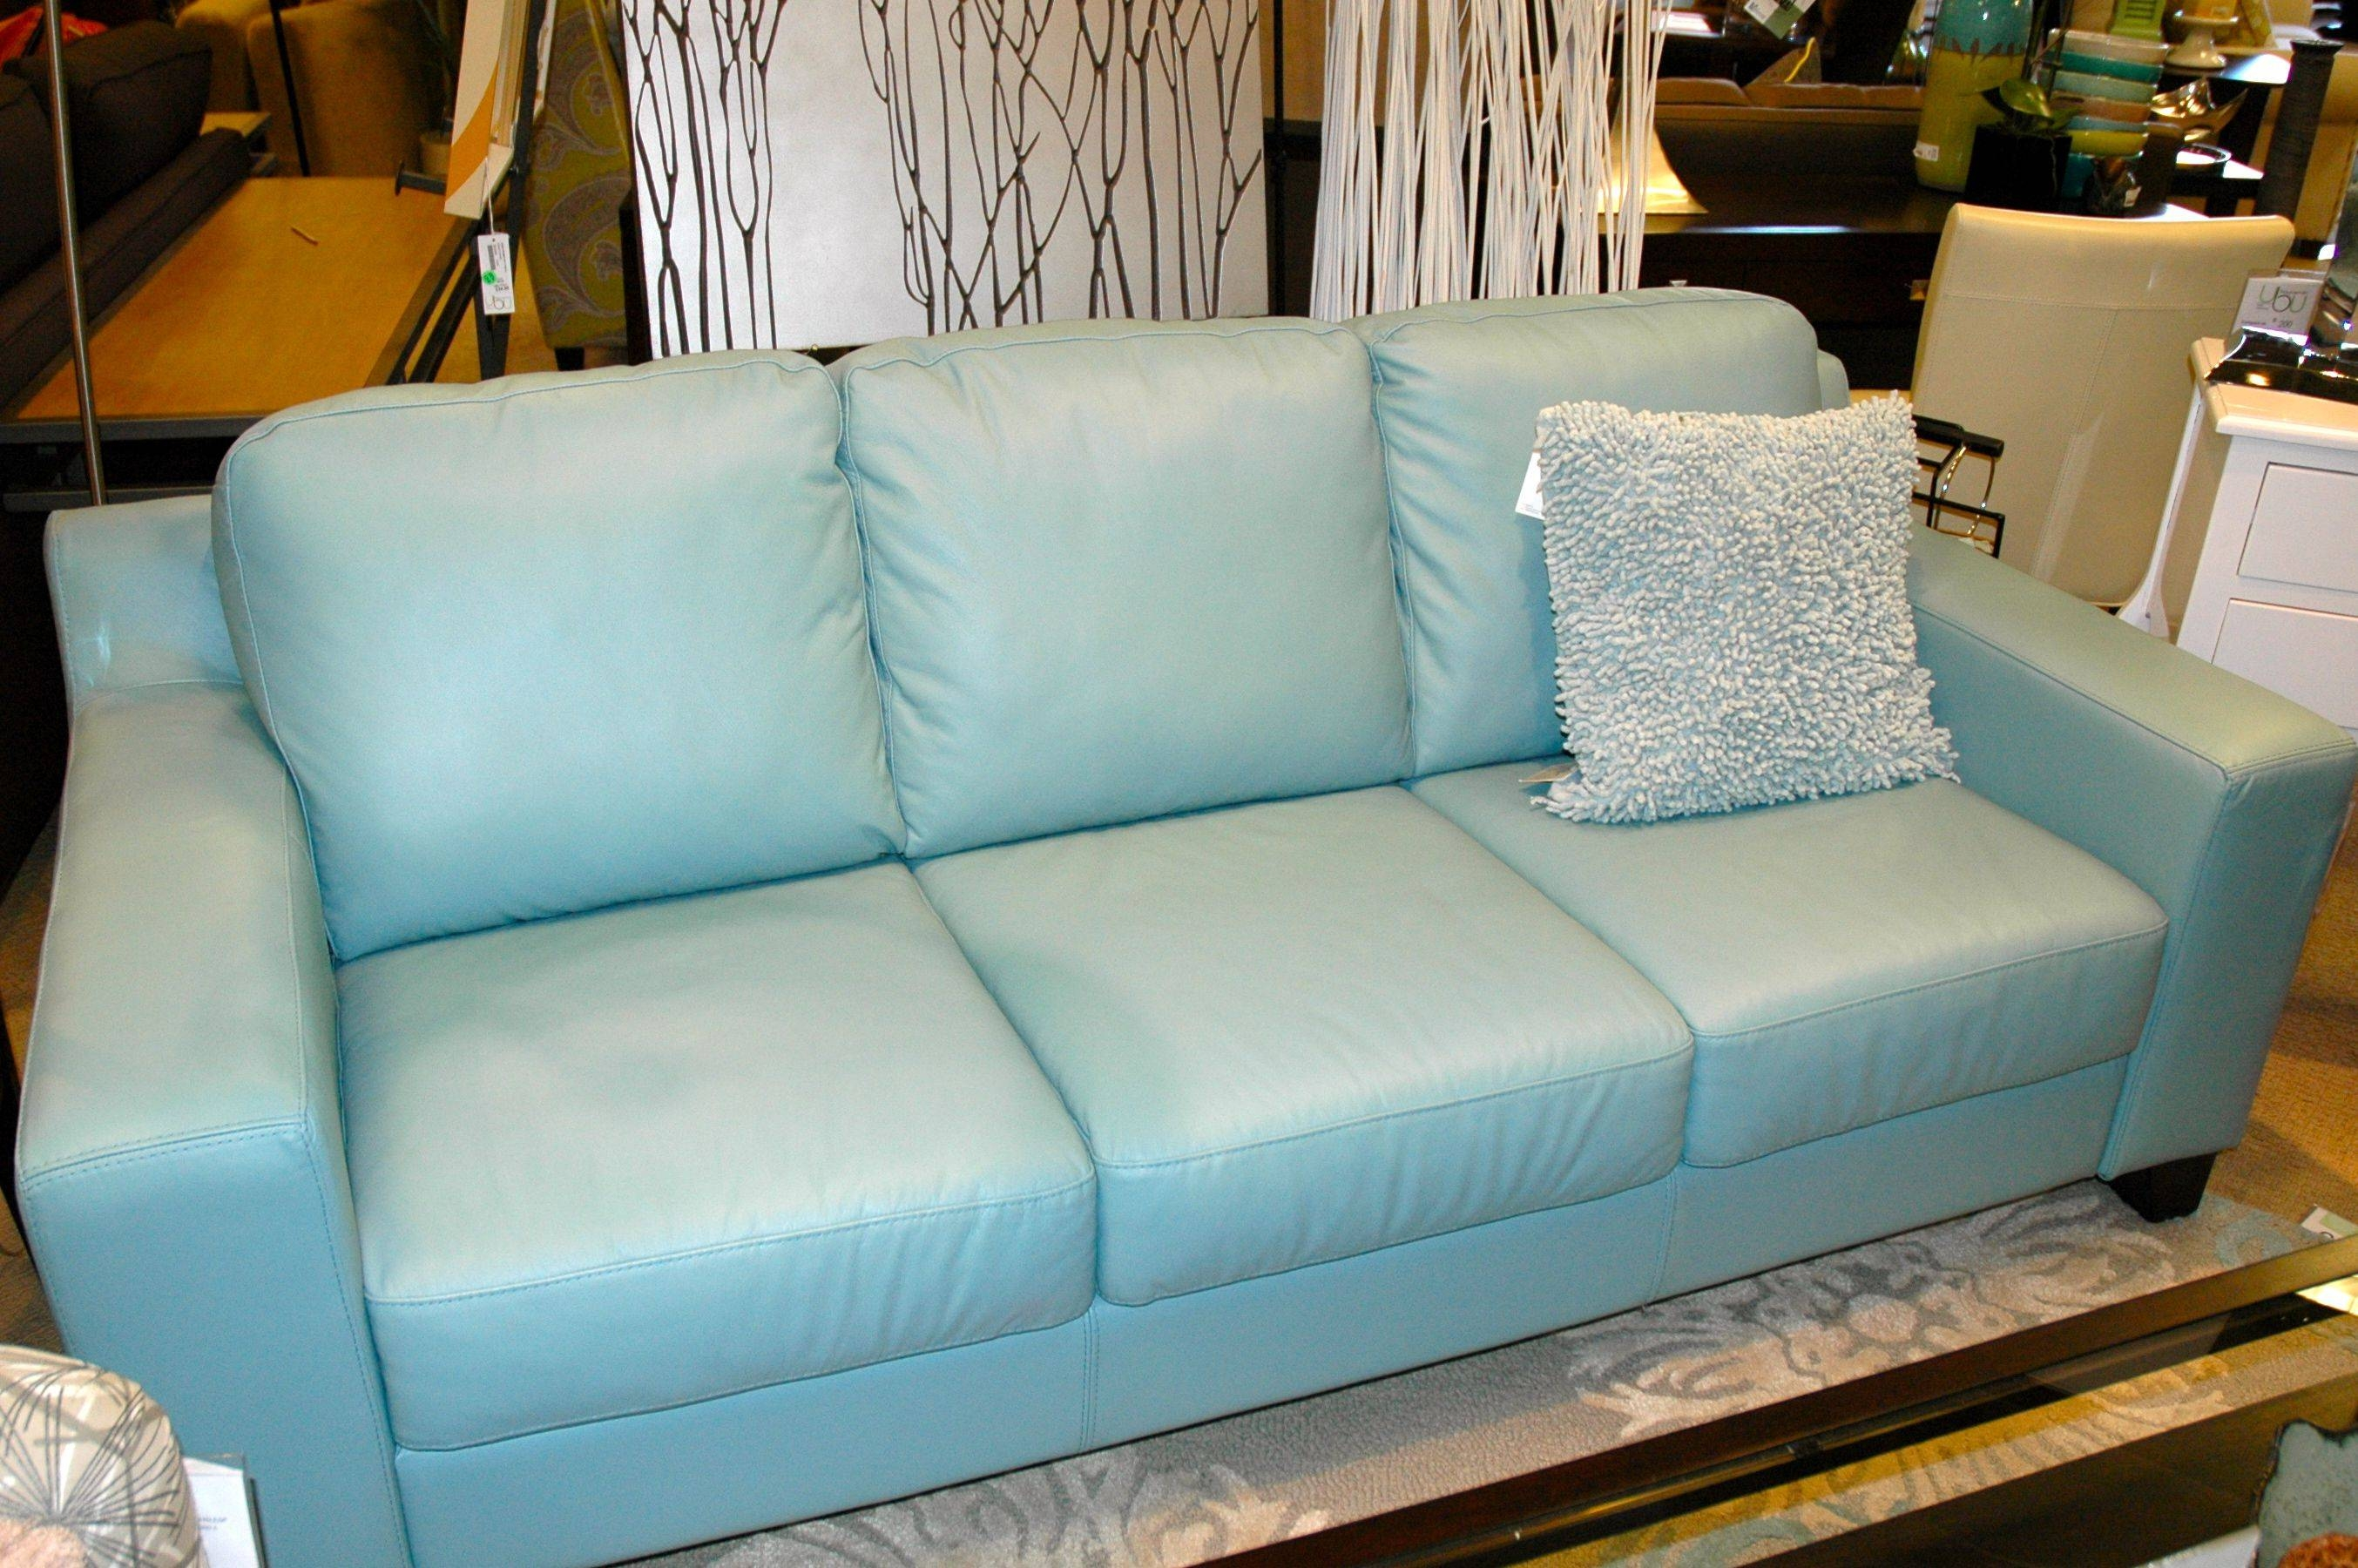 Best 15 Of Sky Blue Sofas